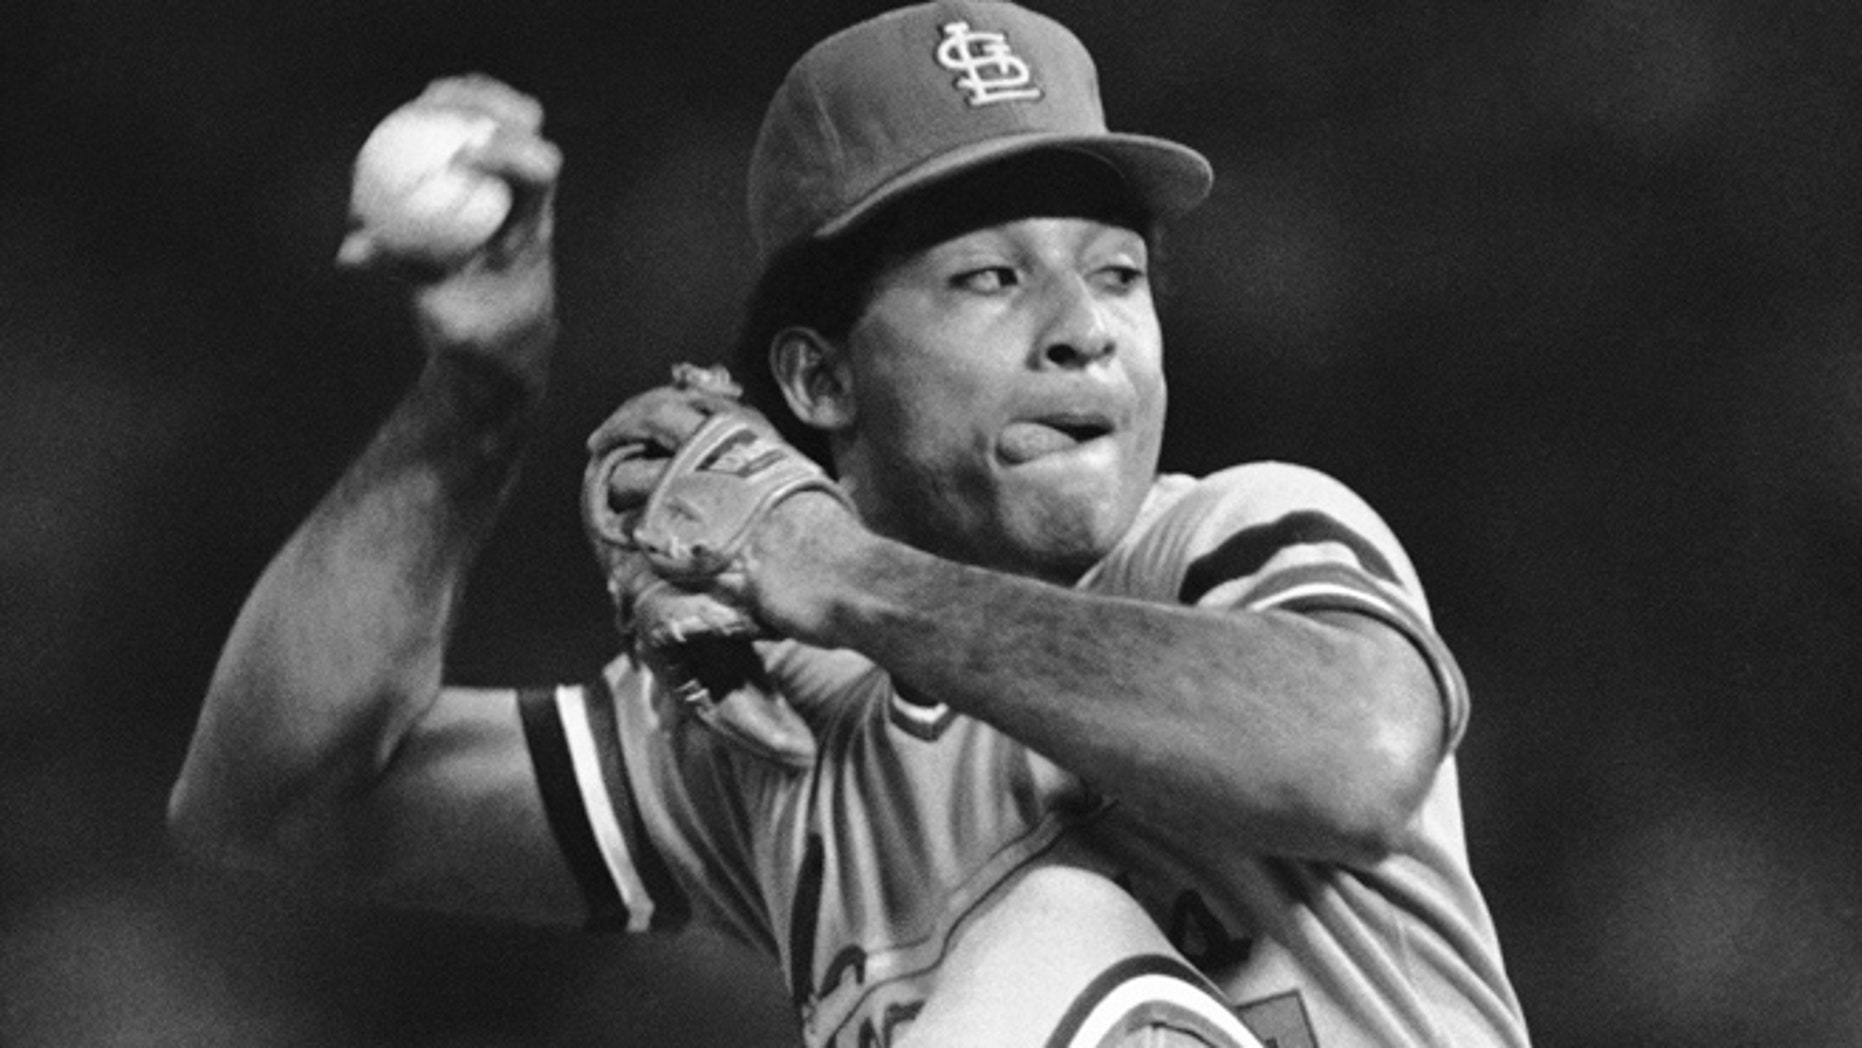 Joaquin Andujar was a two-time All-Star during five seasons with the Cardinals from 1981-85.